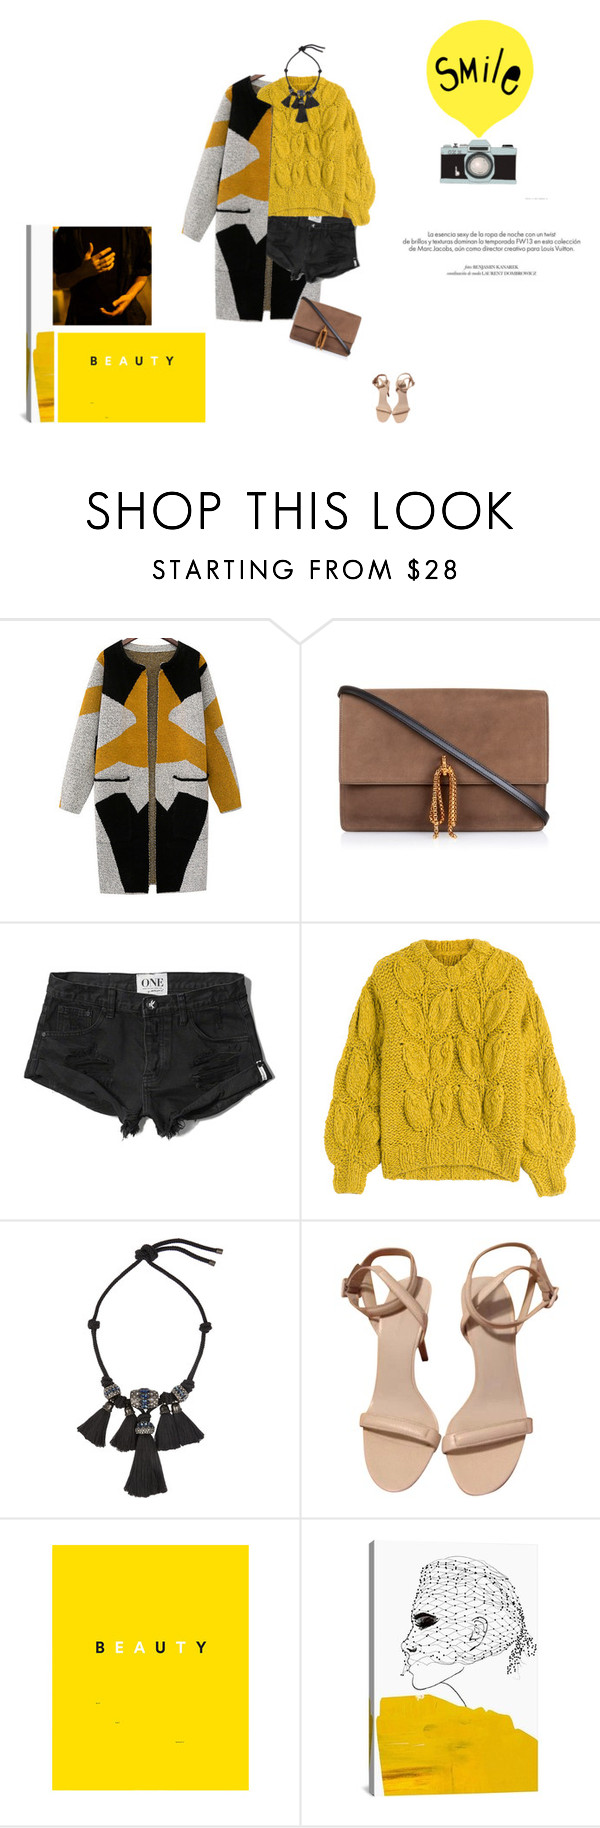 """""""now"""" by majahehmm ❤ liked on Polyvore featuring Nina Ricci, Abercrombie & Fitch, Maison Margiela, Lanvin, Alexander Wang, Louis Vuitton and iCanvas"""